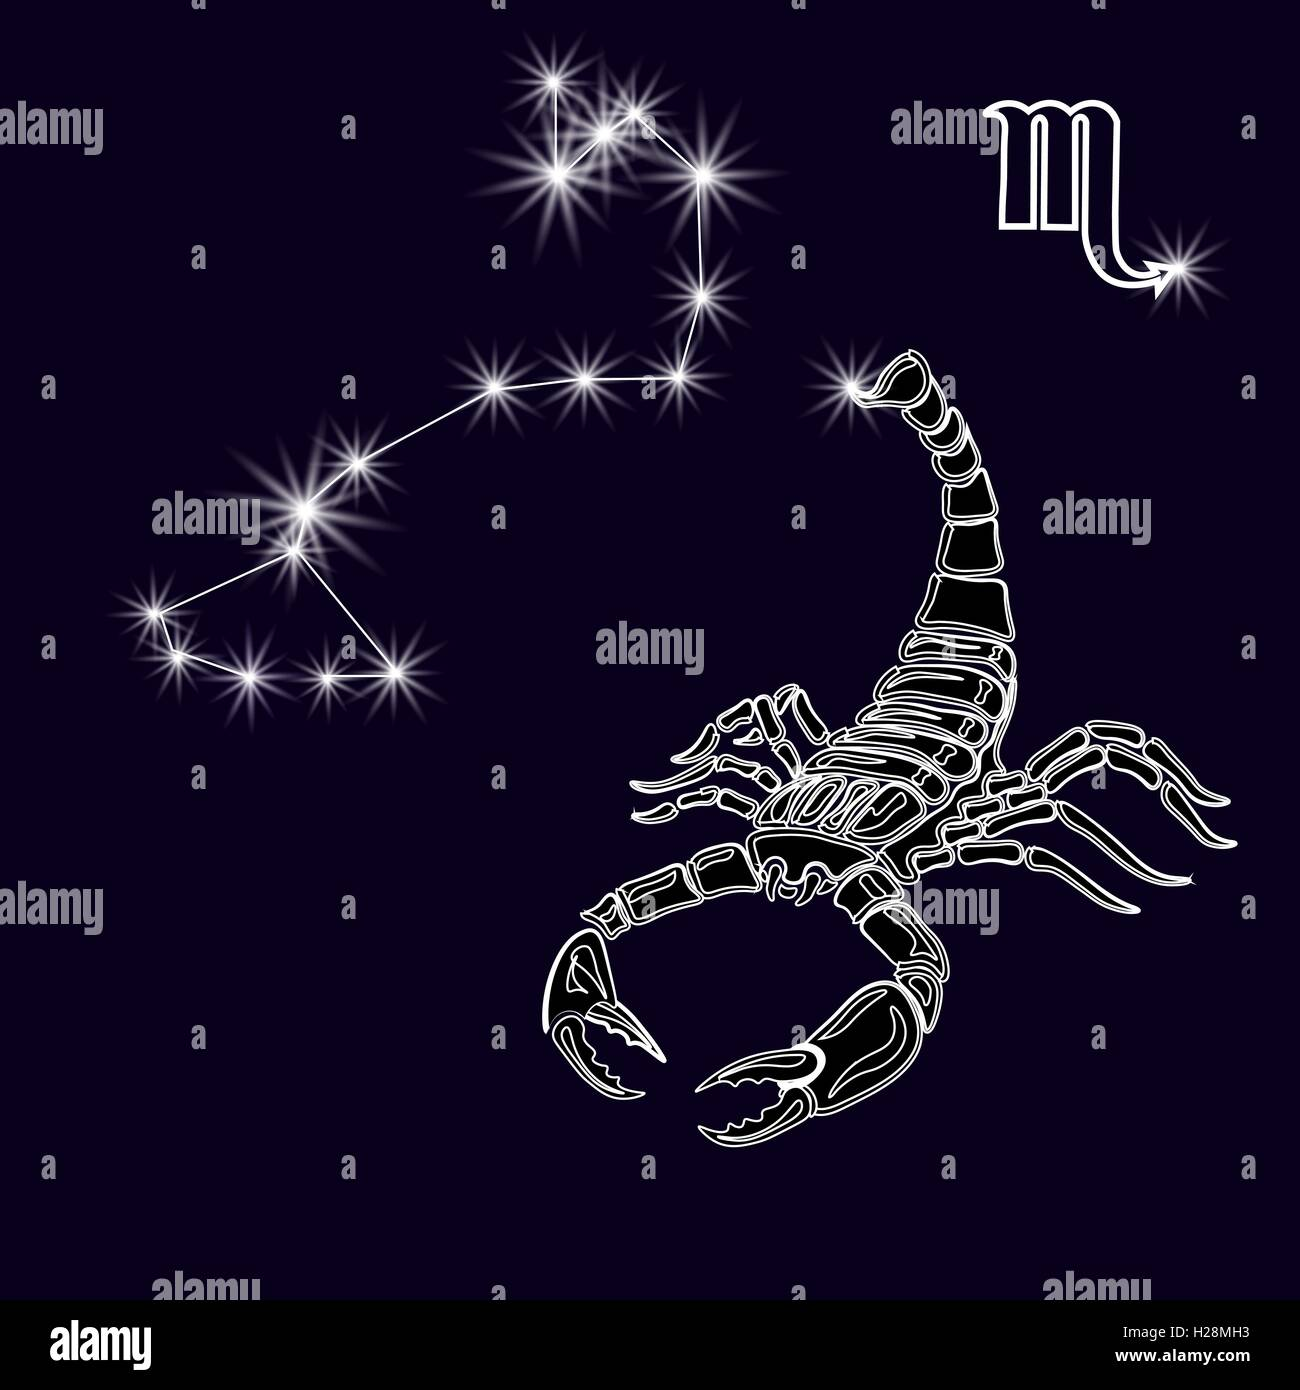 Scorpion Tattoo Photos Scorpion Tattoo Images Page 3 Alamy